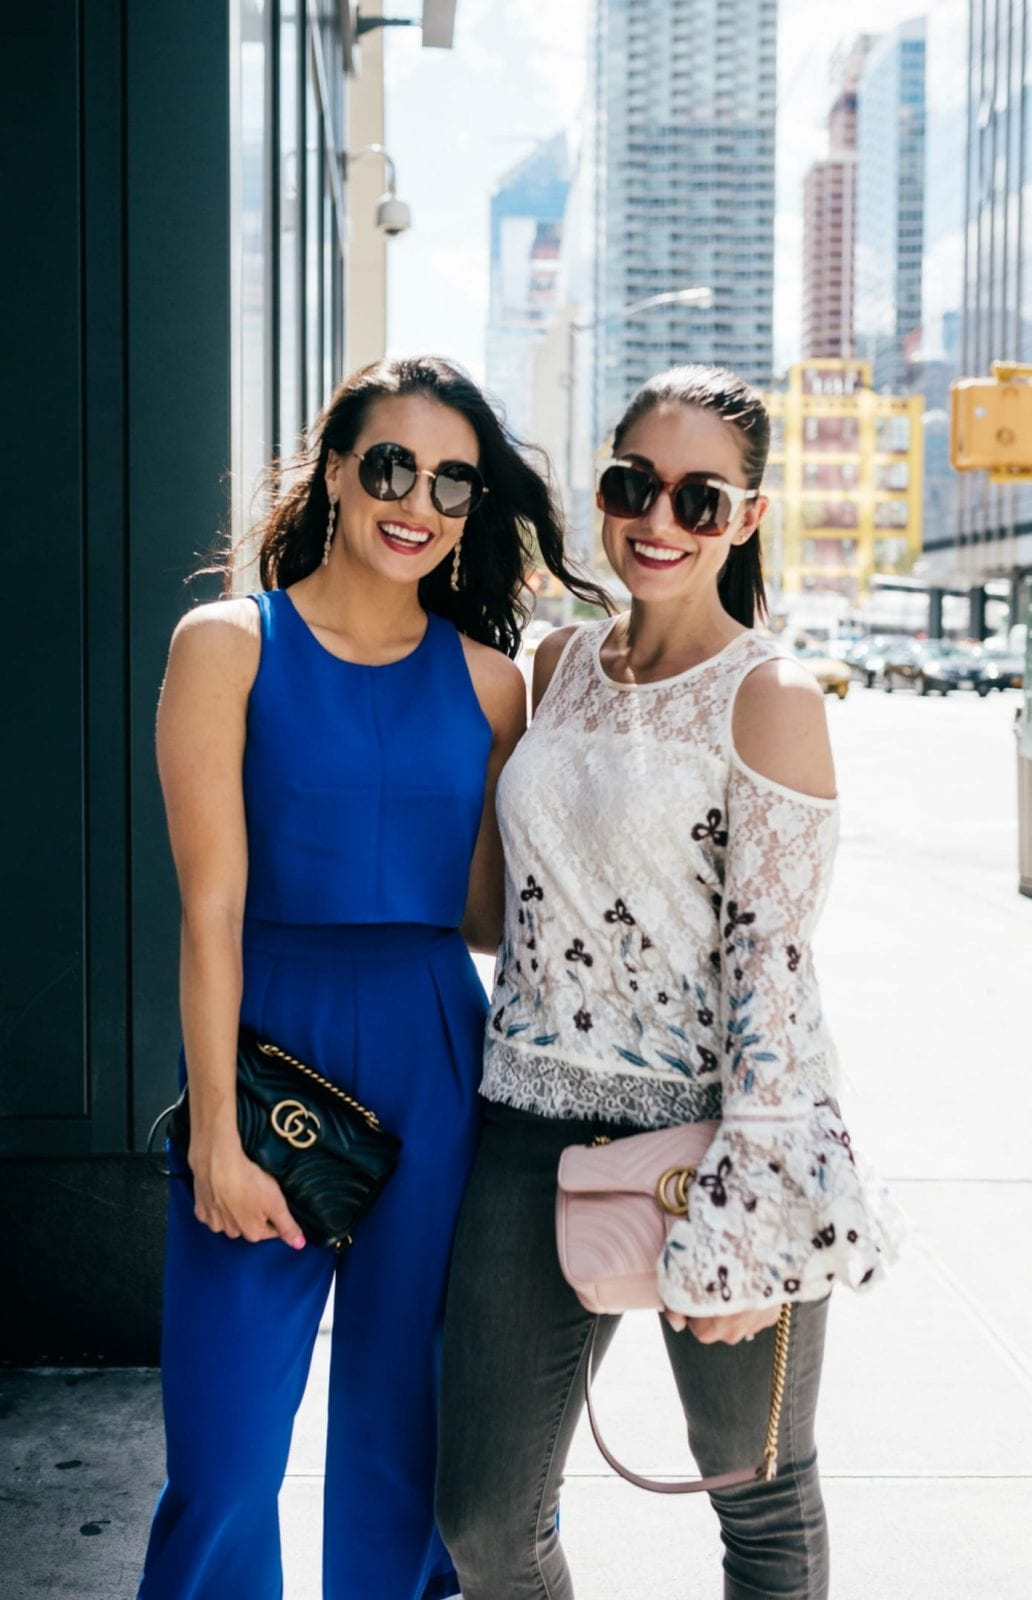 Blogging BFFs from the Blogosphere